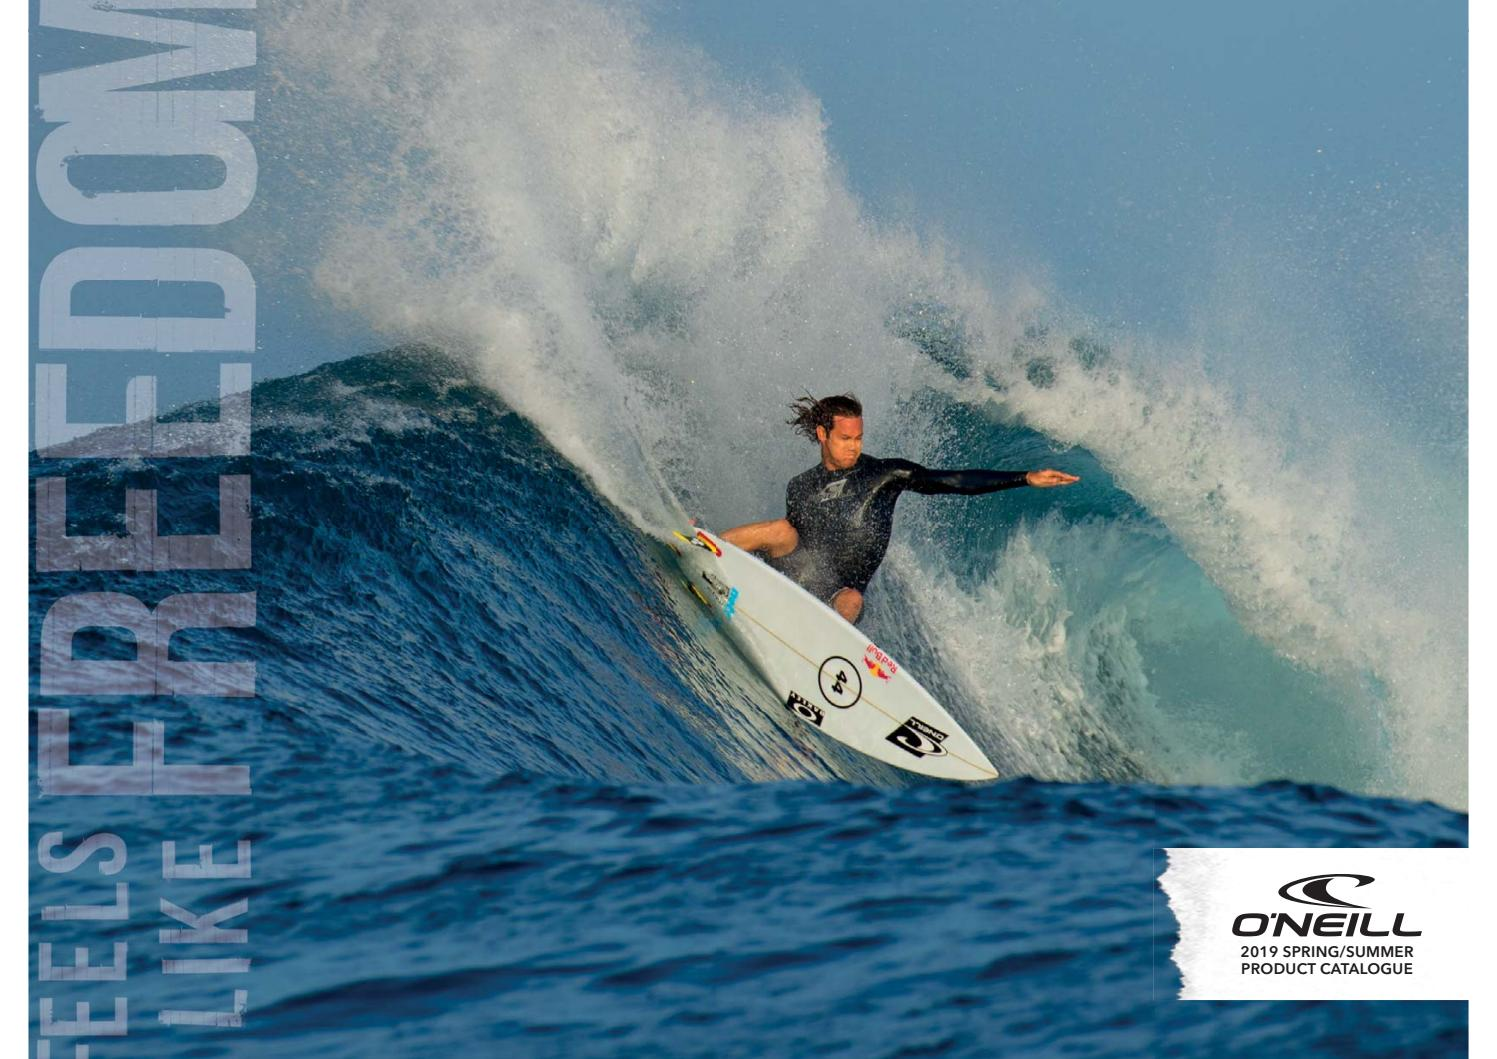 S19 OWL CATALOG by O Neill Wetsuits Ltd - issuu 8b0497197